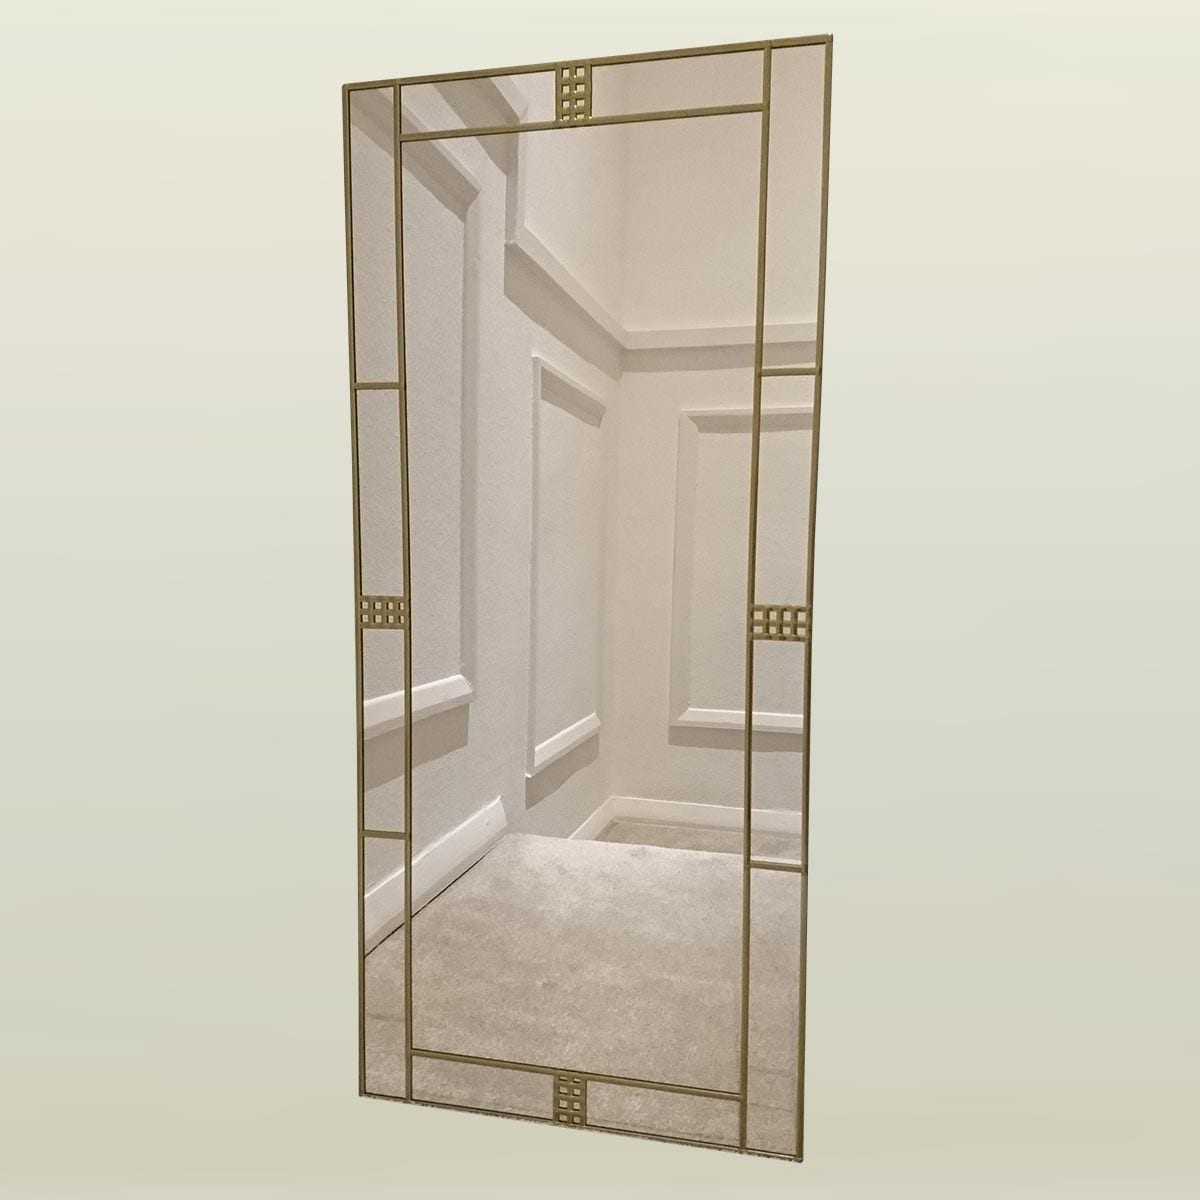 Art Deco Wall Mirrors In Famous Art Deco Brass Wall Mirror 50x91cm (20in X 3ft) (View 9 of 20)